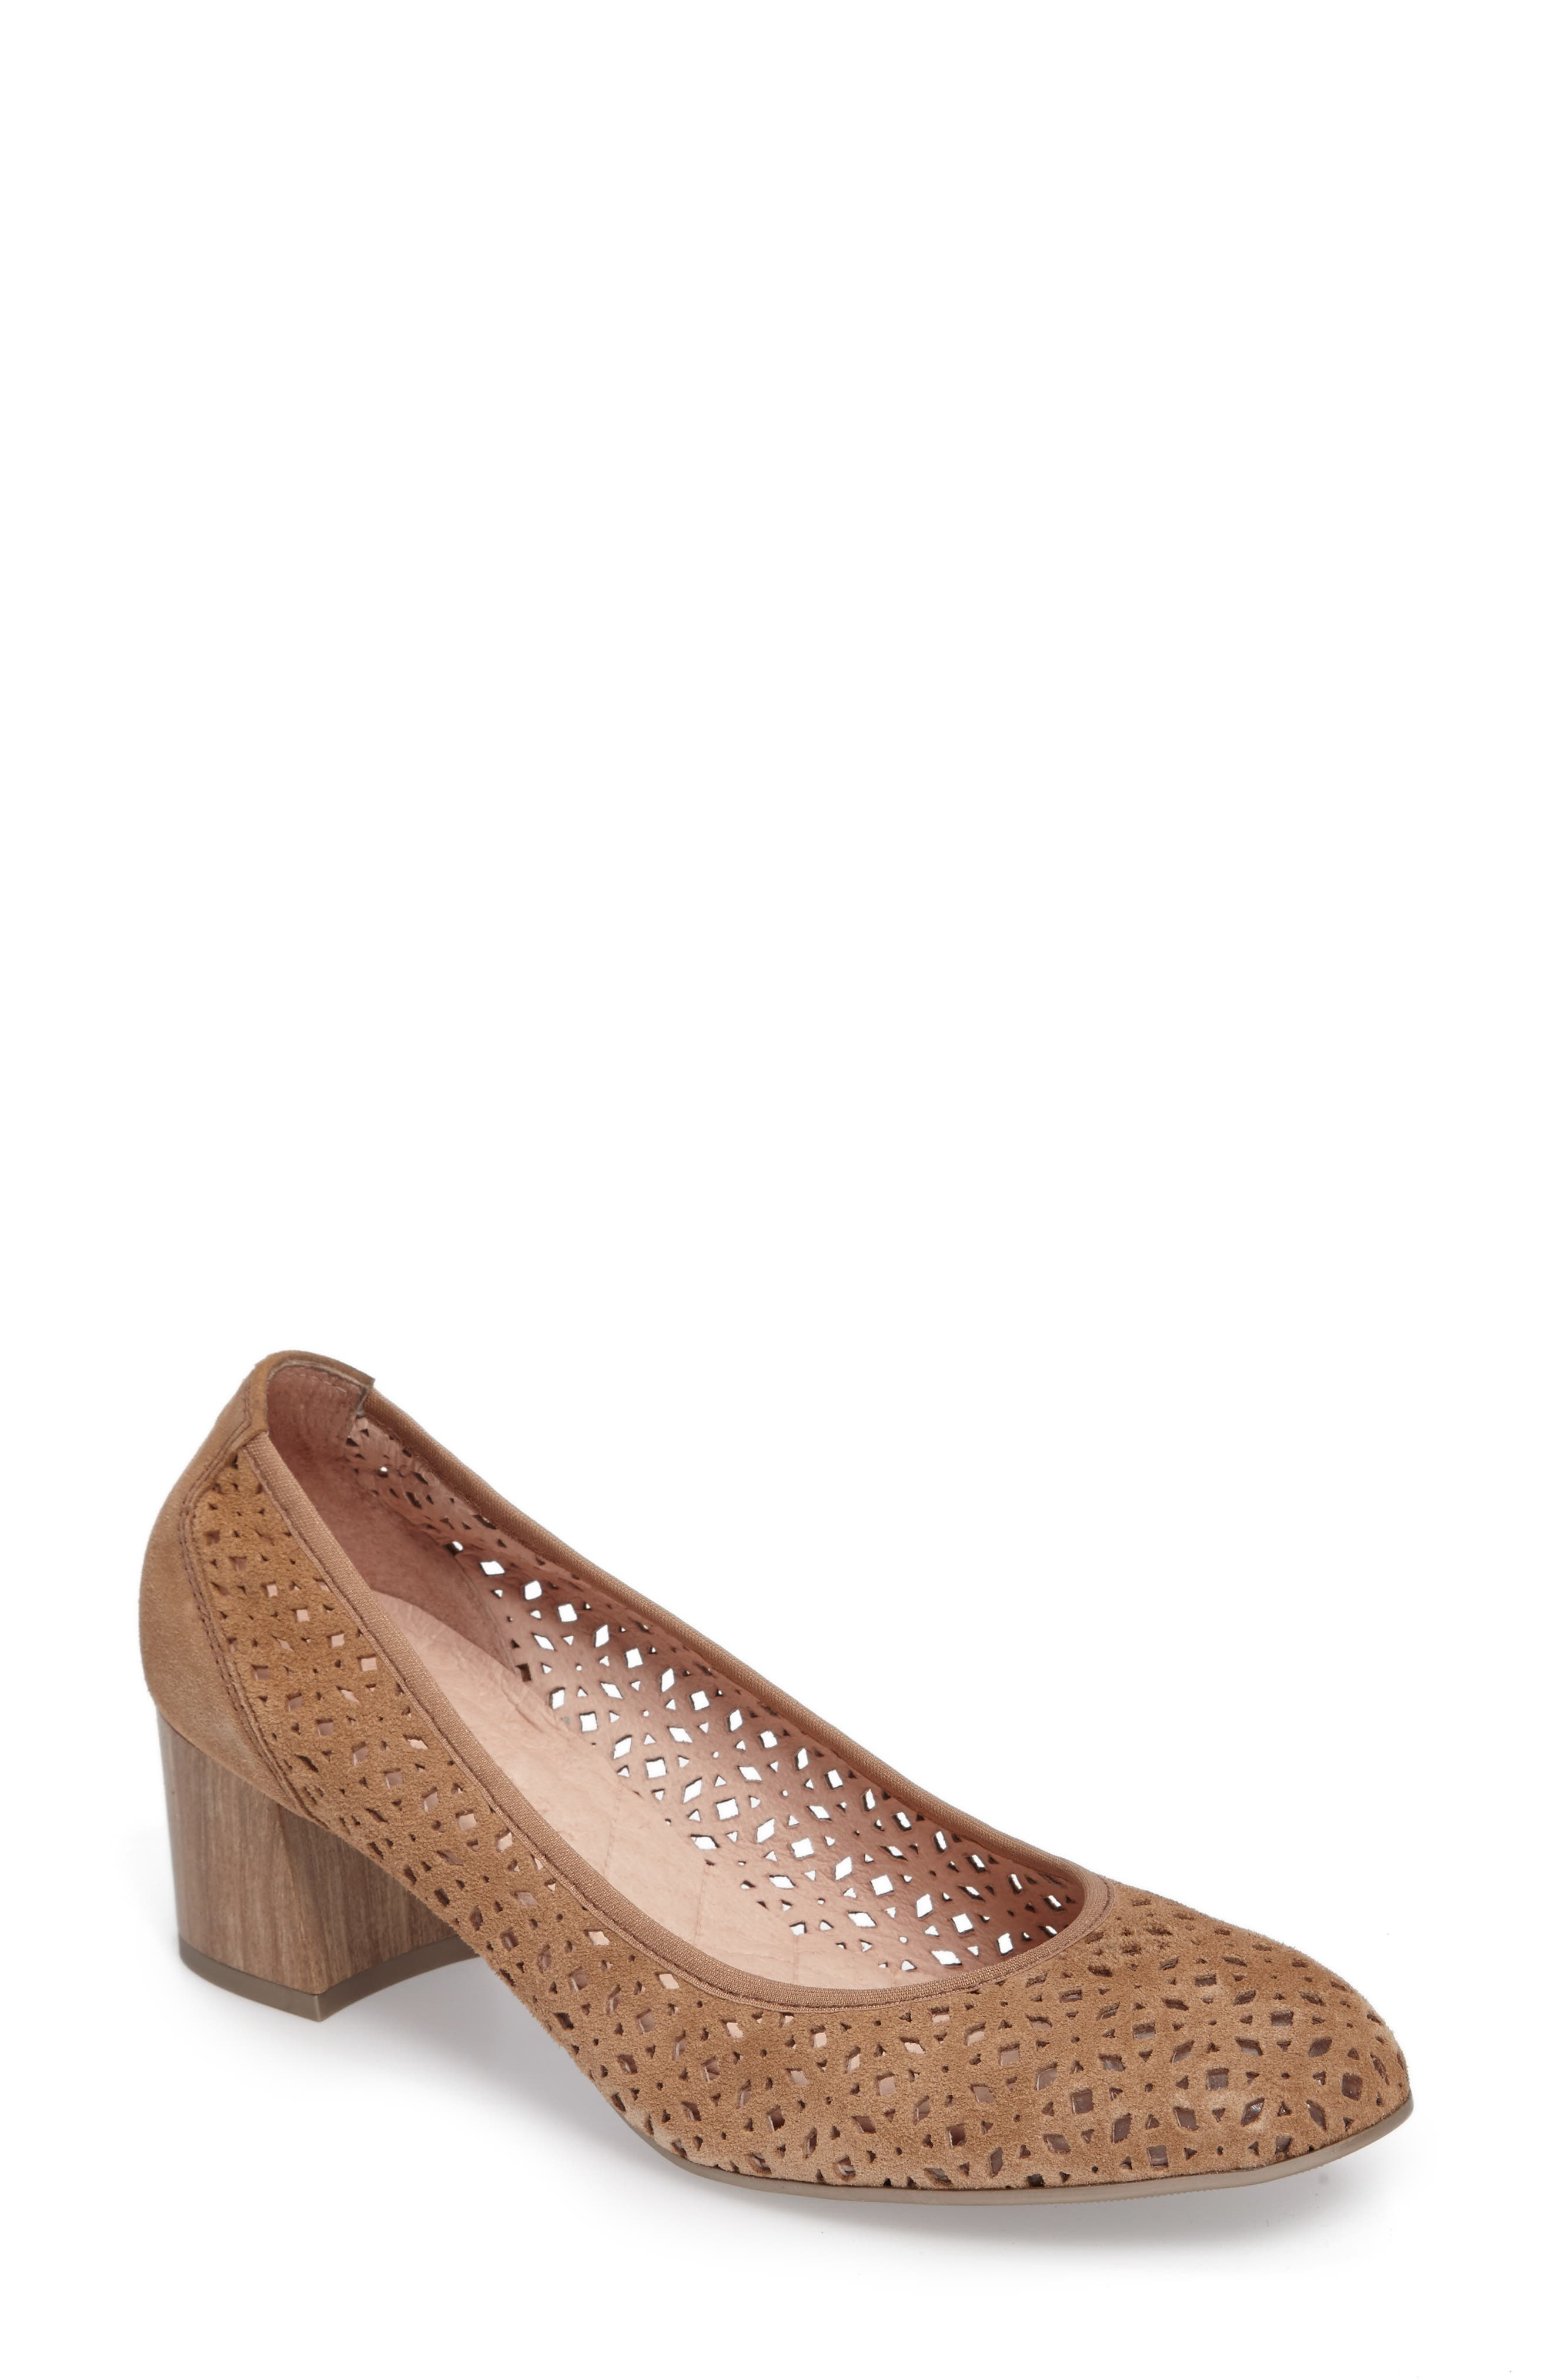 Jovanna Perforated Pump,                             Main thumbnail 1, color,                             Velour Avena Leather